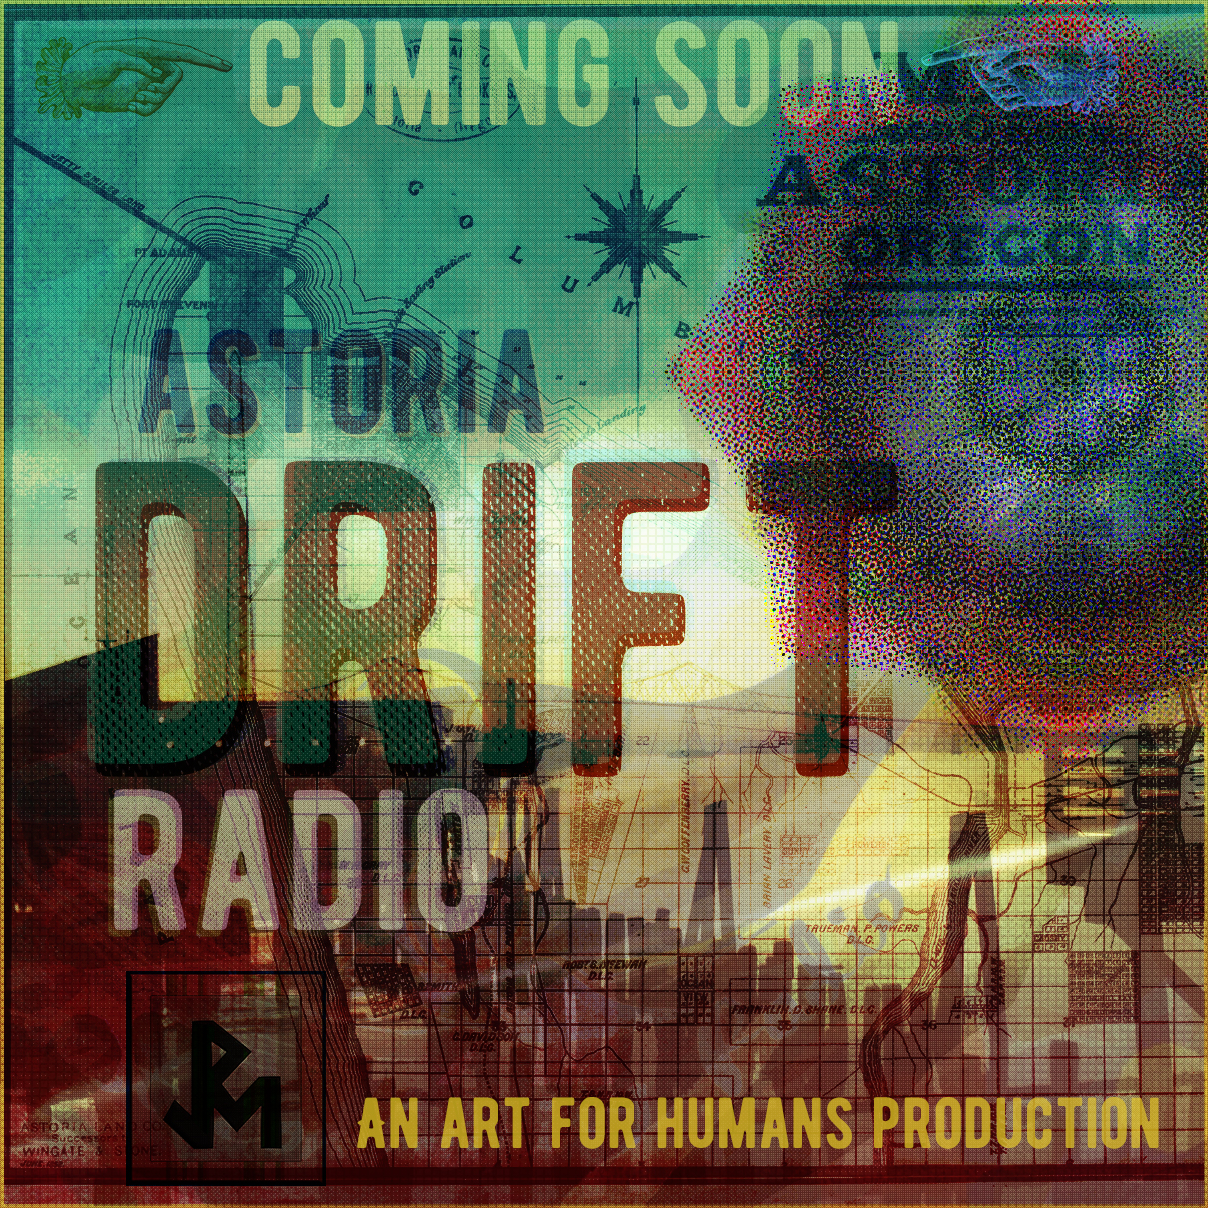 afe1d8681 Coast Community Radio is one of the gems of our new home town. I have  embraced radio as an essential vehicle for transmitting the oral tradition  of art